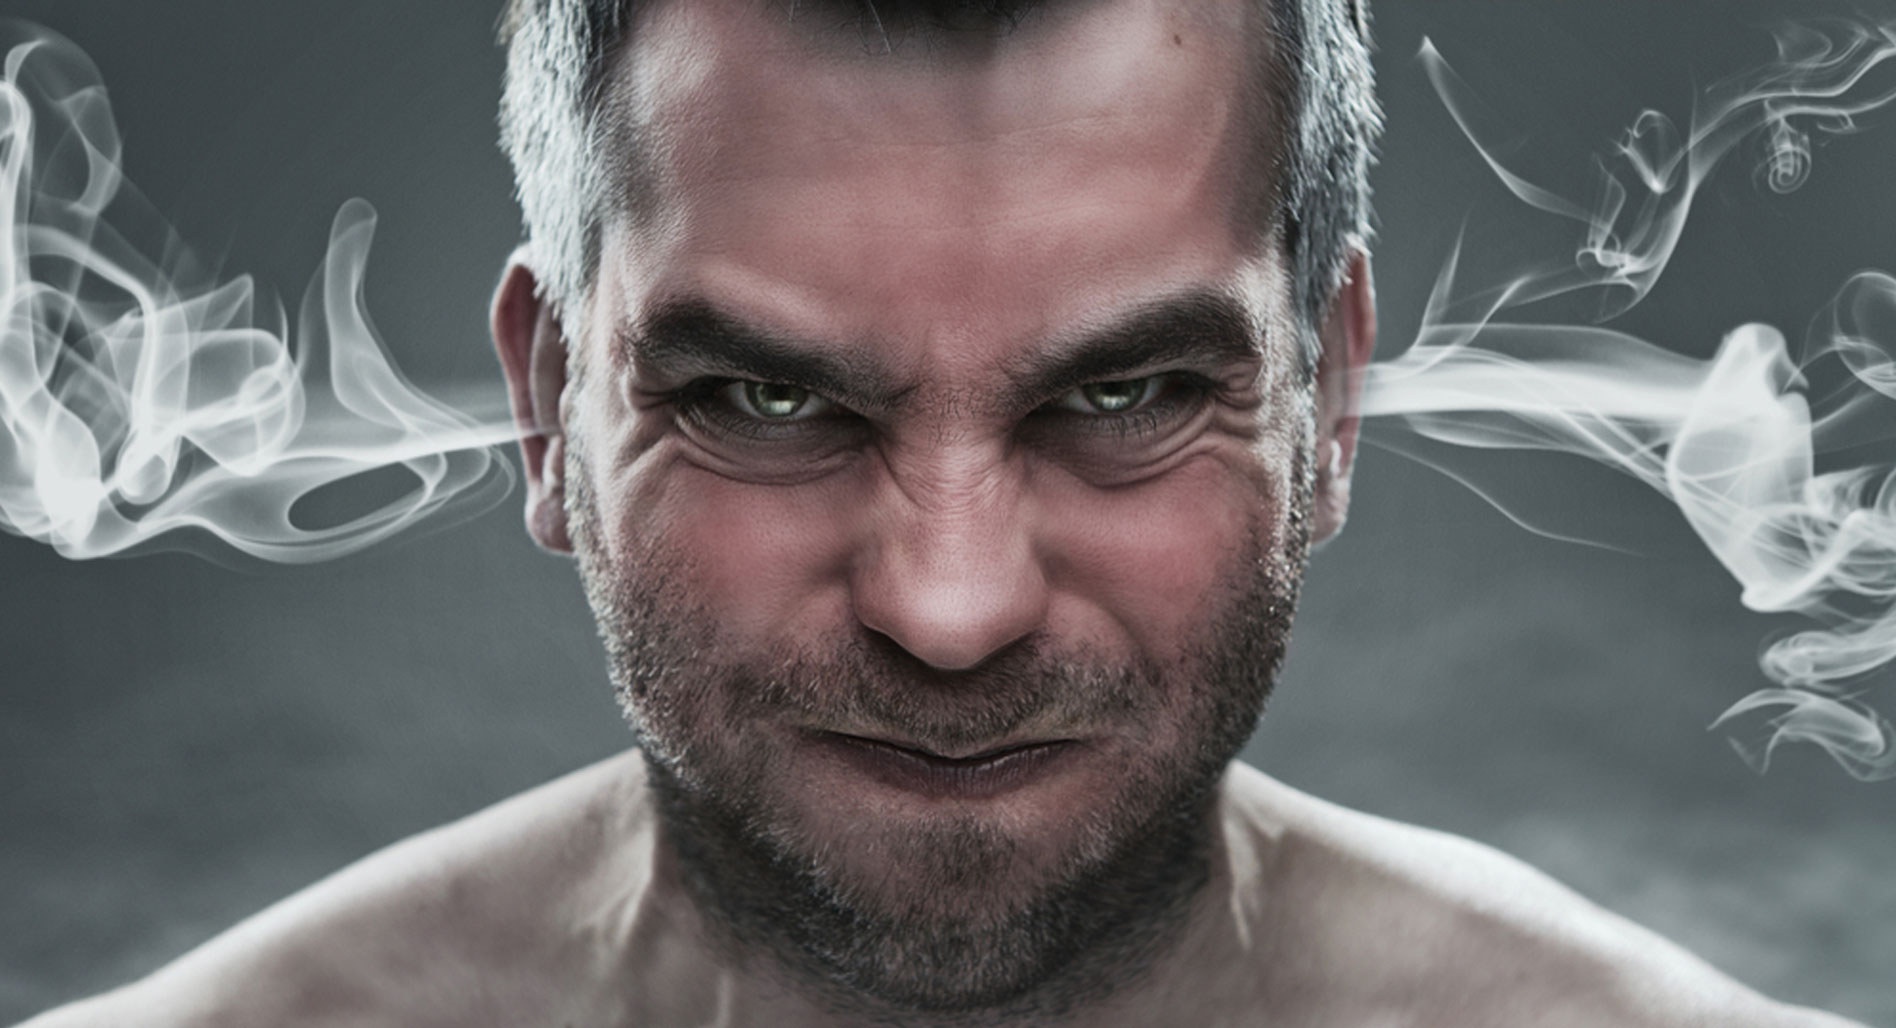 REVEALED: Why you are so angry & stressed all the time